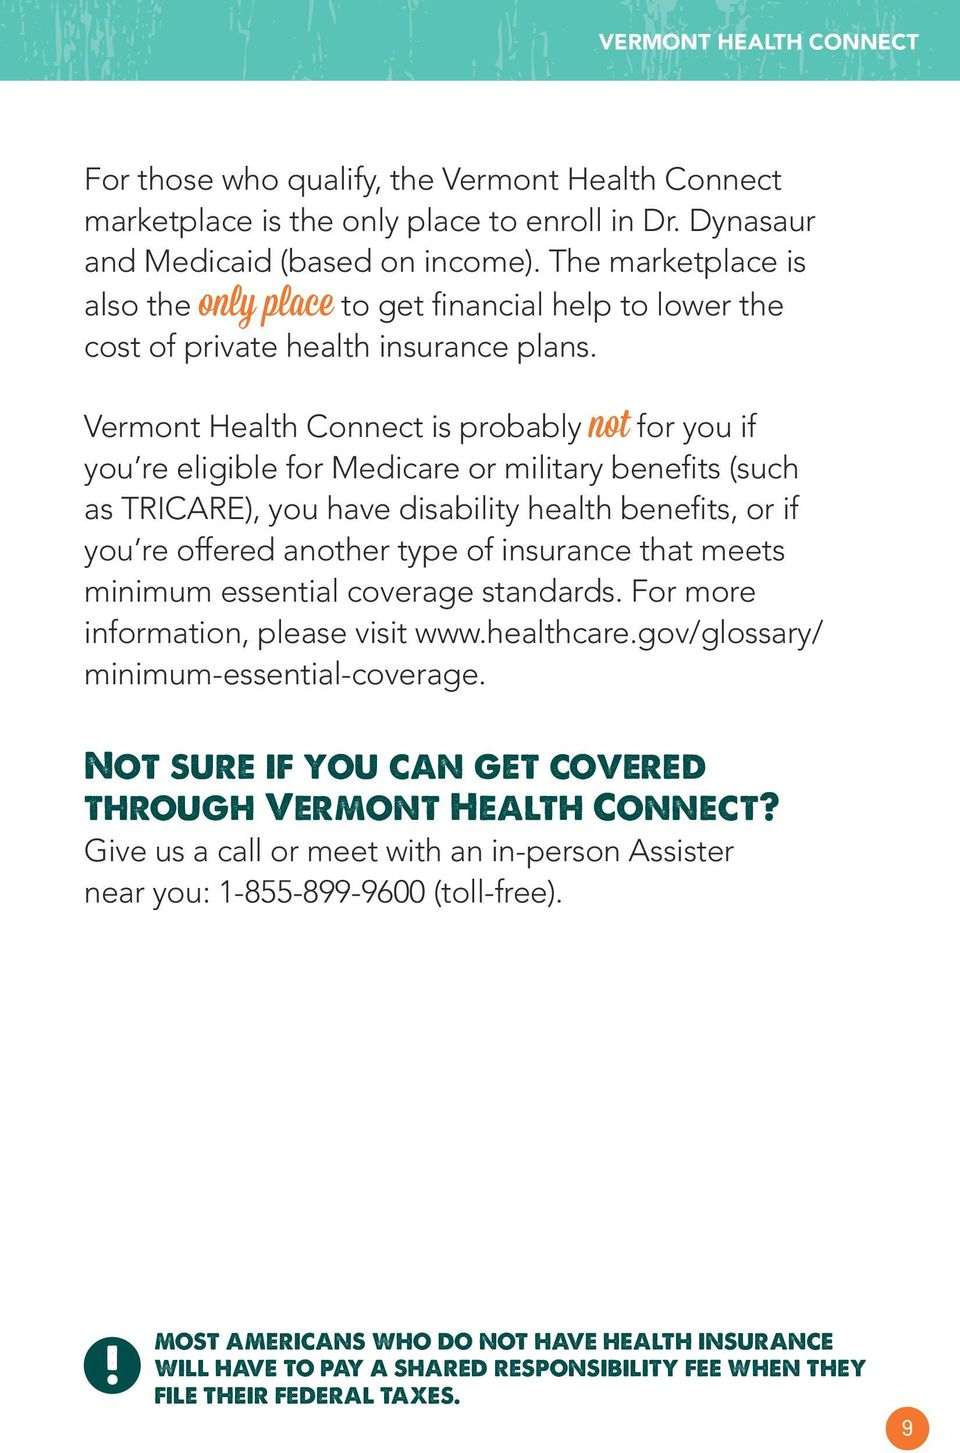 Vermont Health Connect is probably not for you if you re eligible for Medicare or military benefits (such as TRICARE), you have disability health benefits, or if you re offered another type of